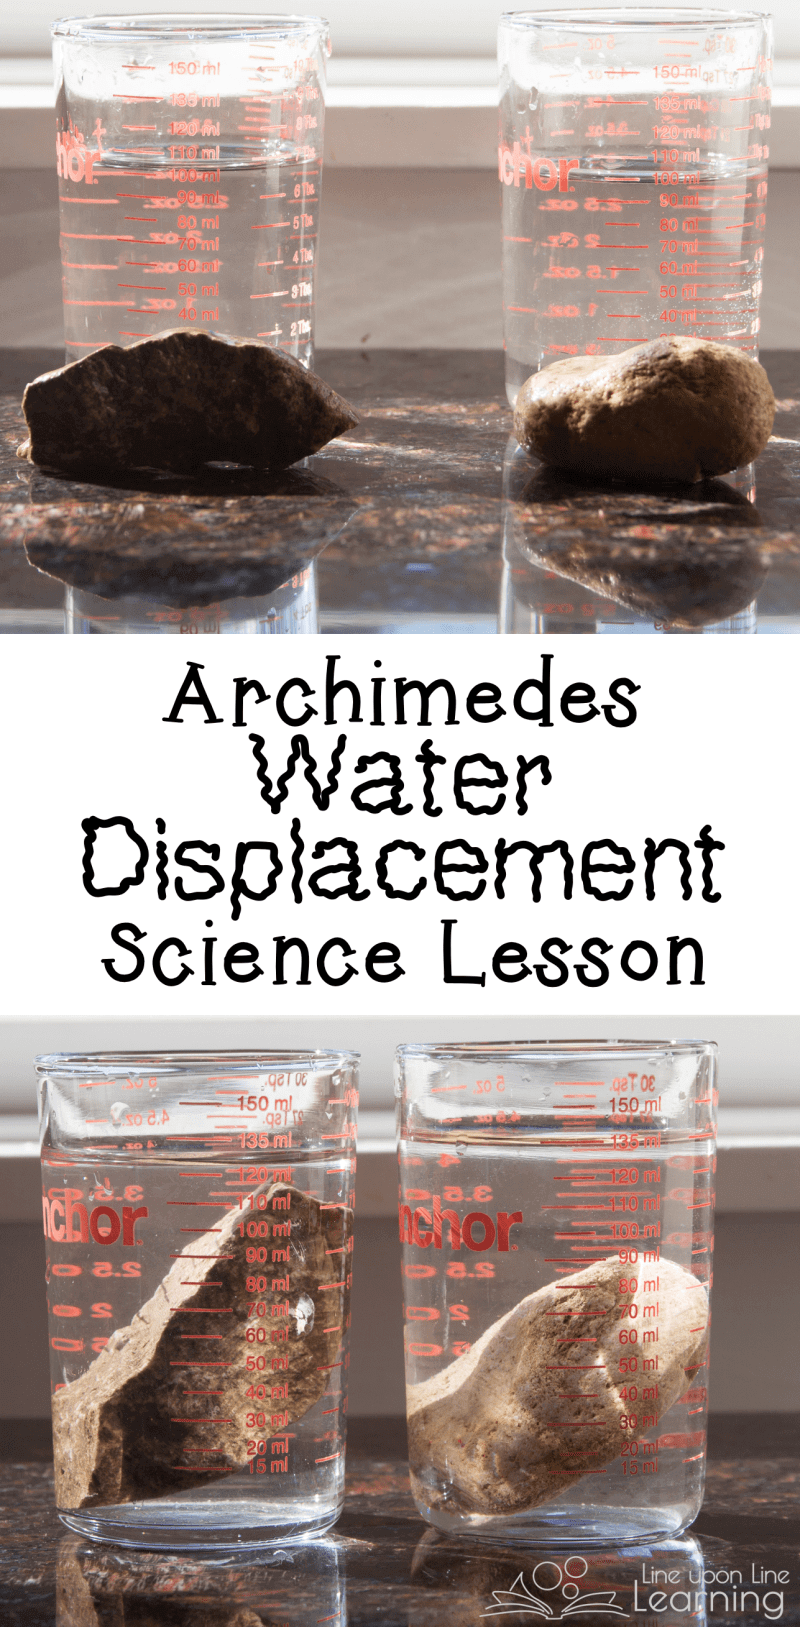 We used small liquid measures from our kitchen to measure the volume of two different rocks using Archimedes' water displacement201703 archimedes water displacement science ideas.